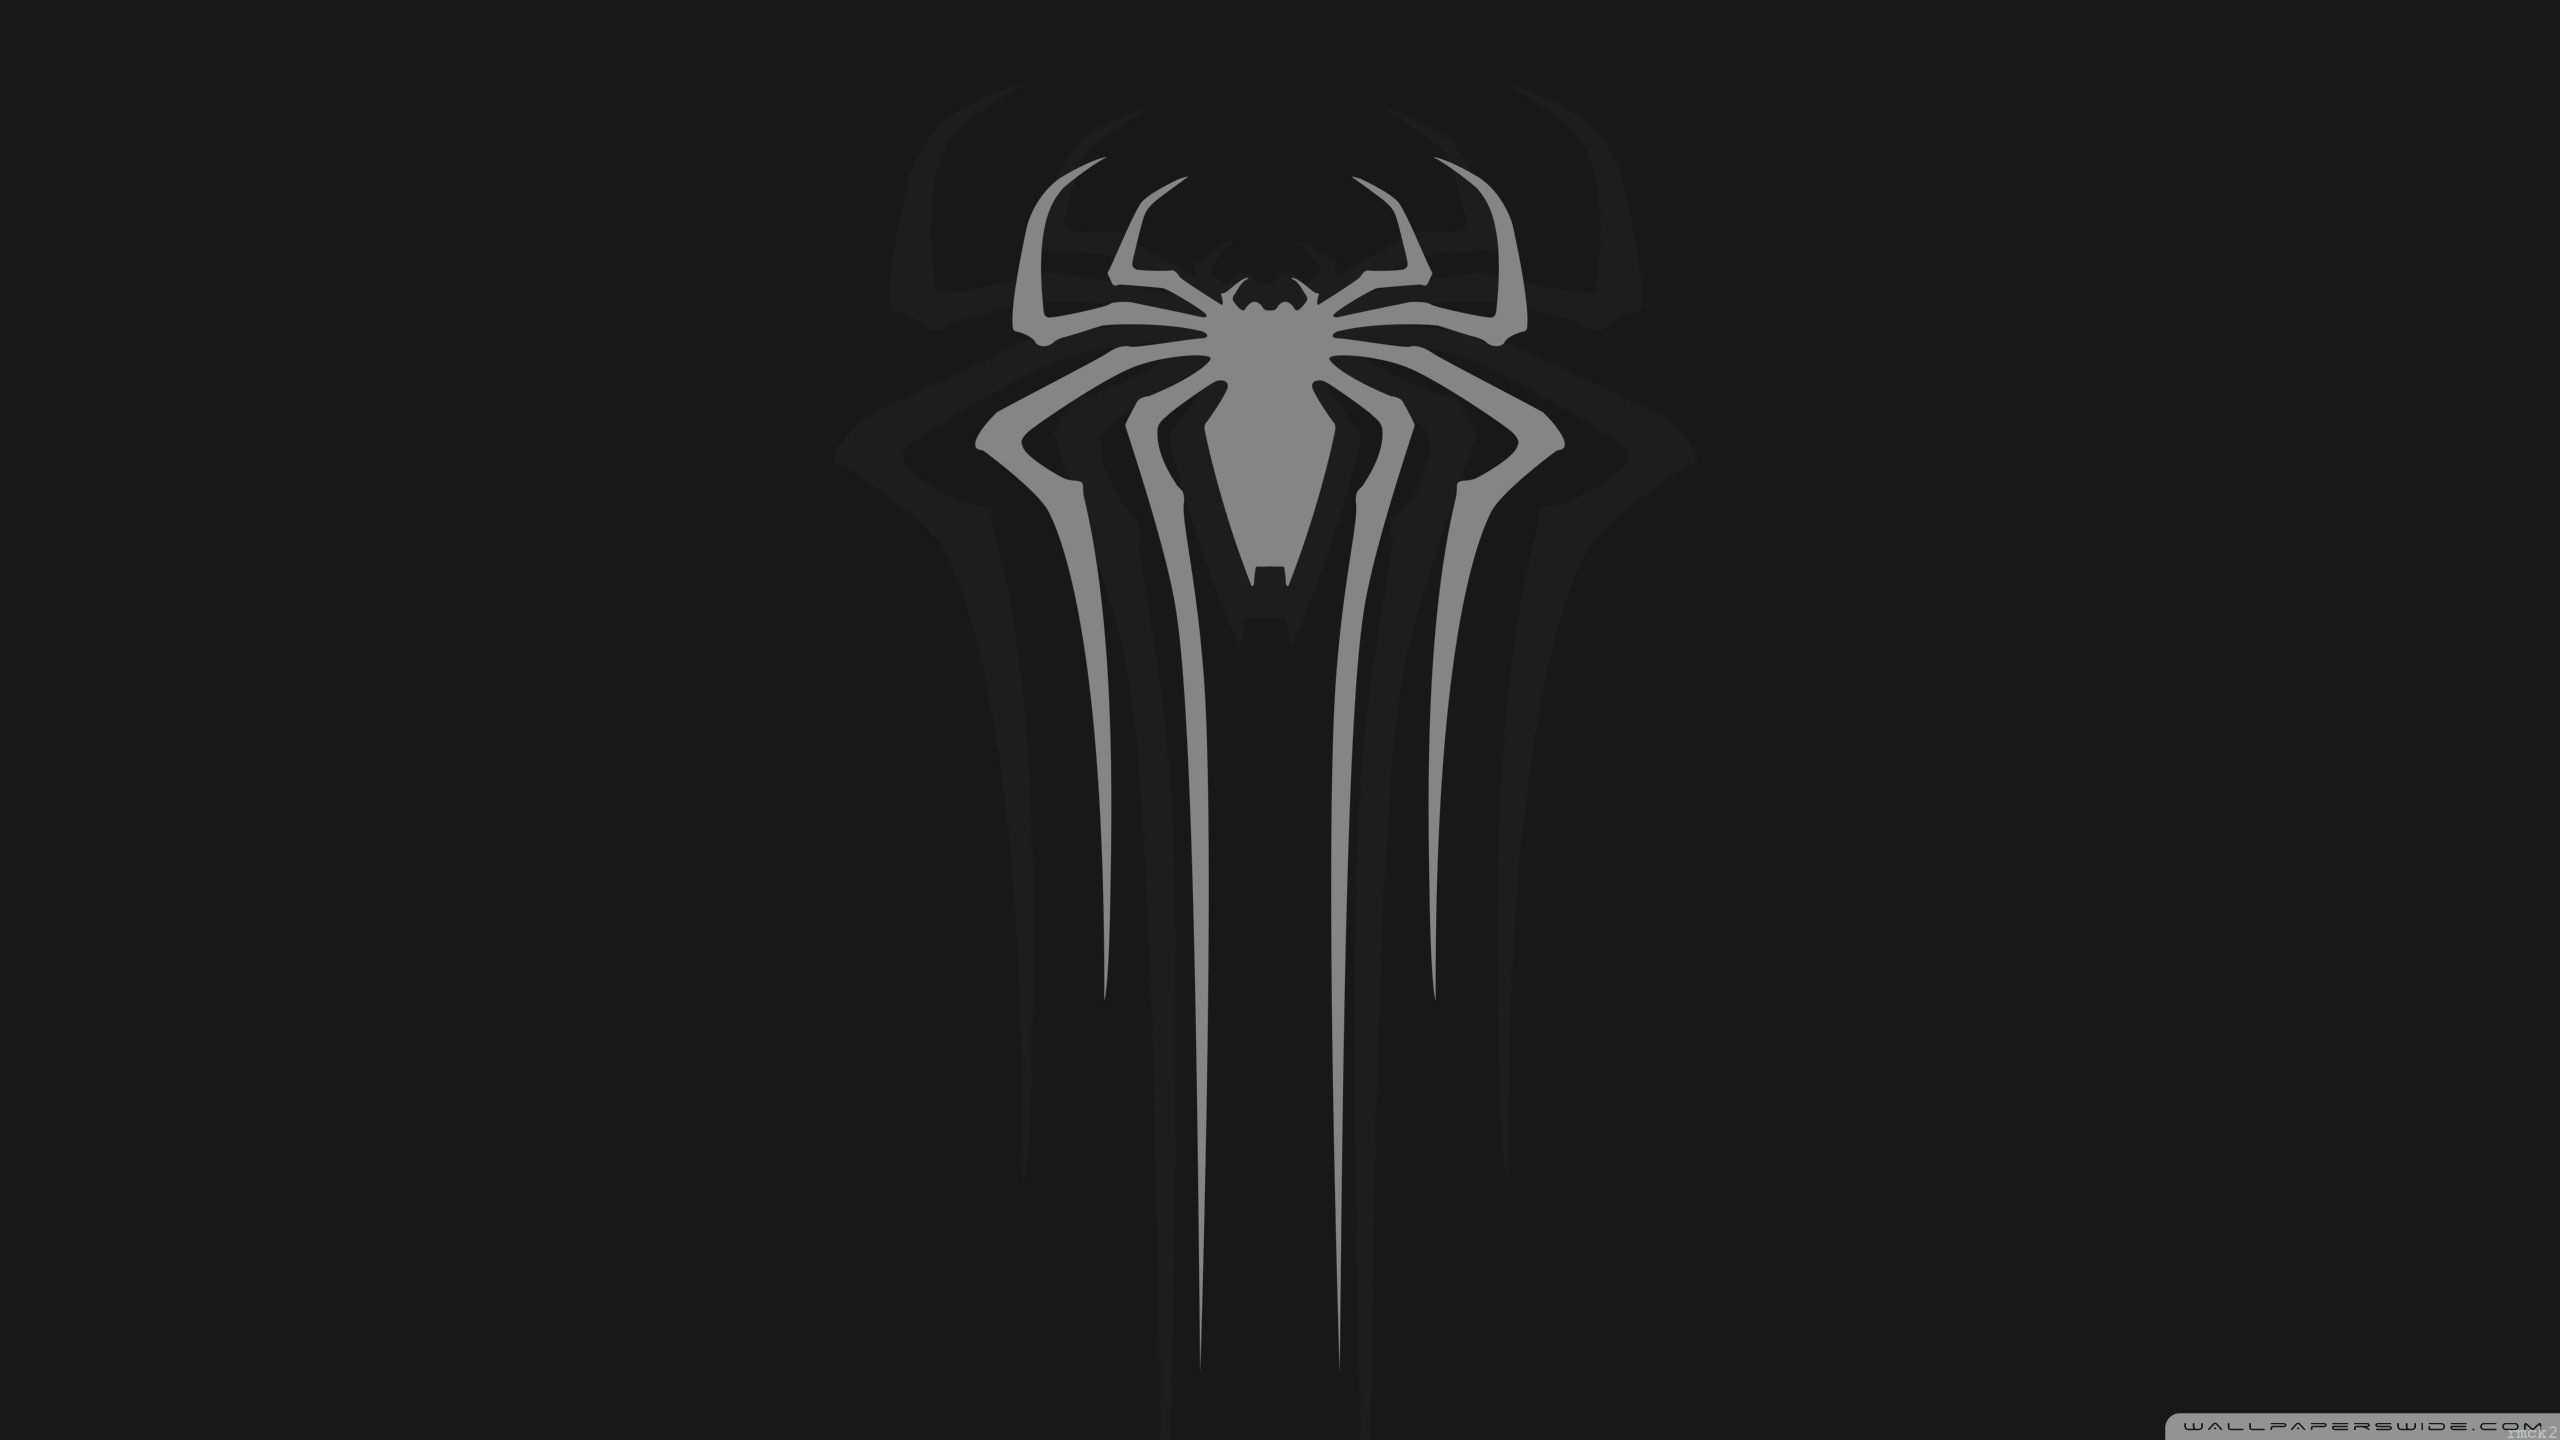 Hd spiderman logo wallpaper 71 images - Black and white spiderman wallpaper ...